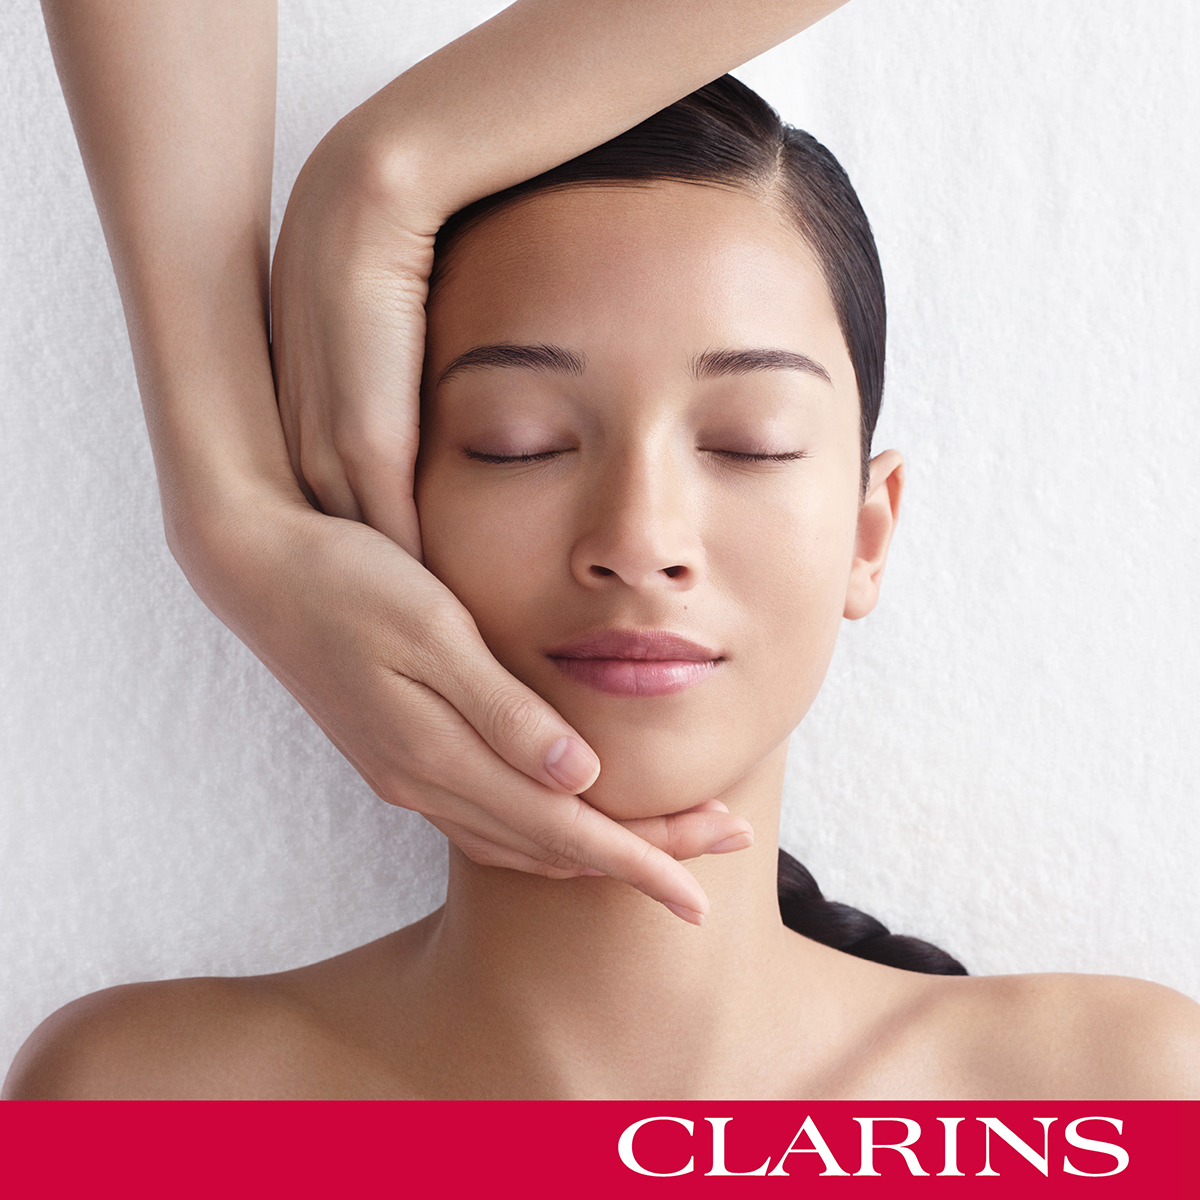 Clarins Gold Salon Facial at Frontlinestyle, Bath and Wells